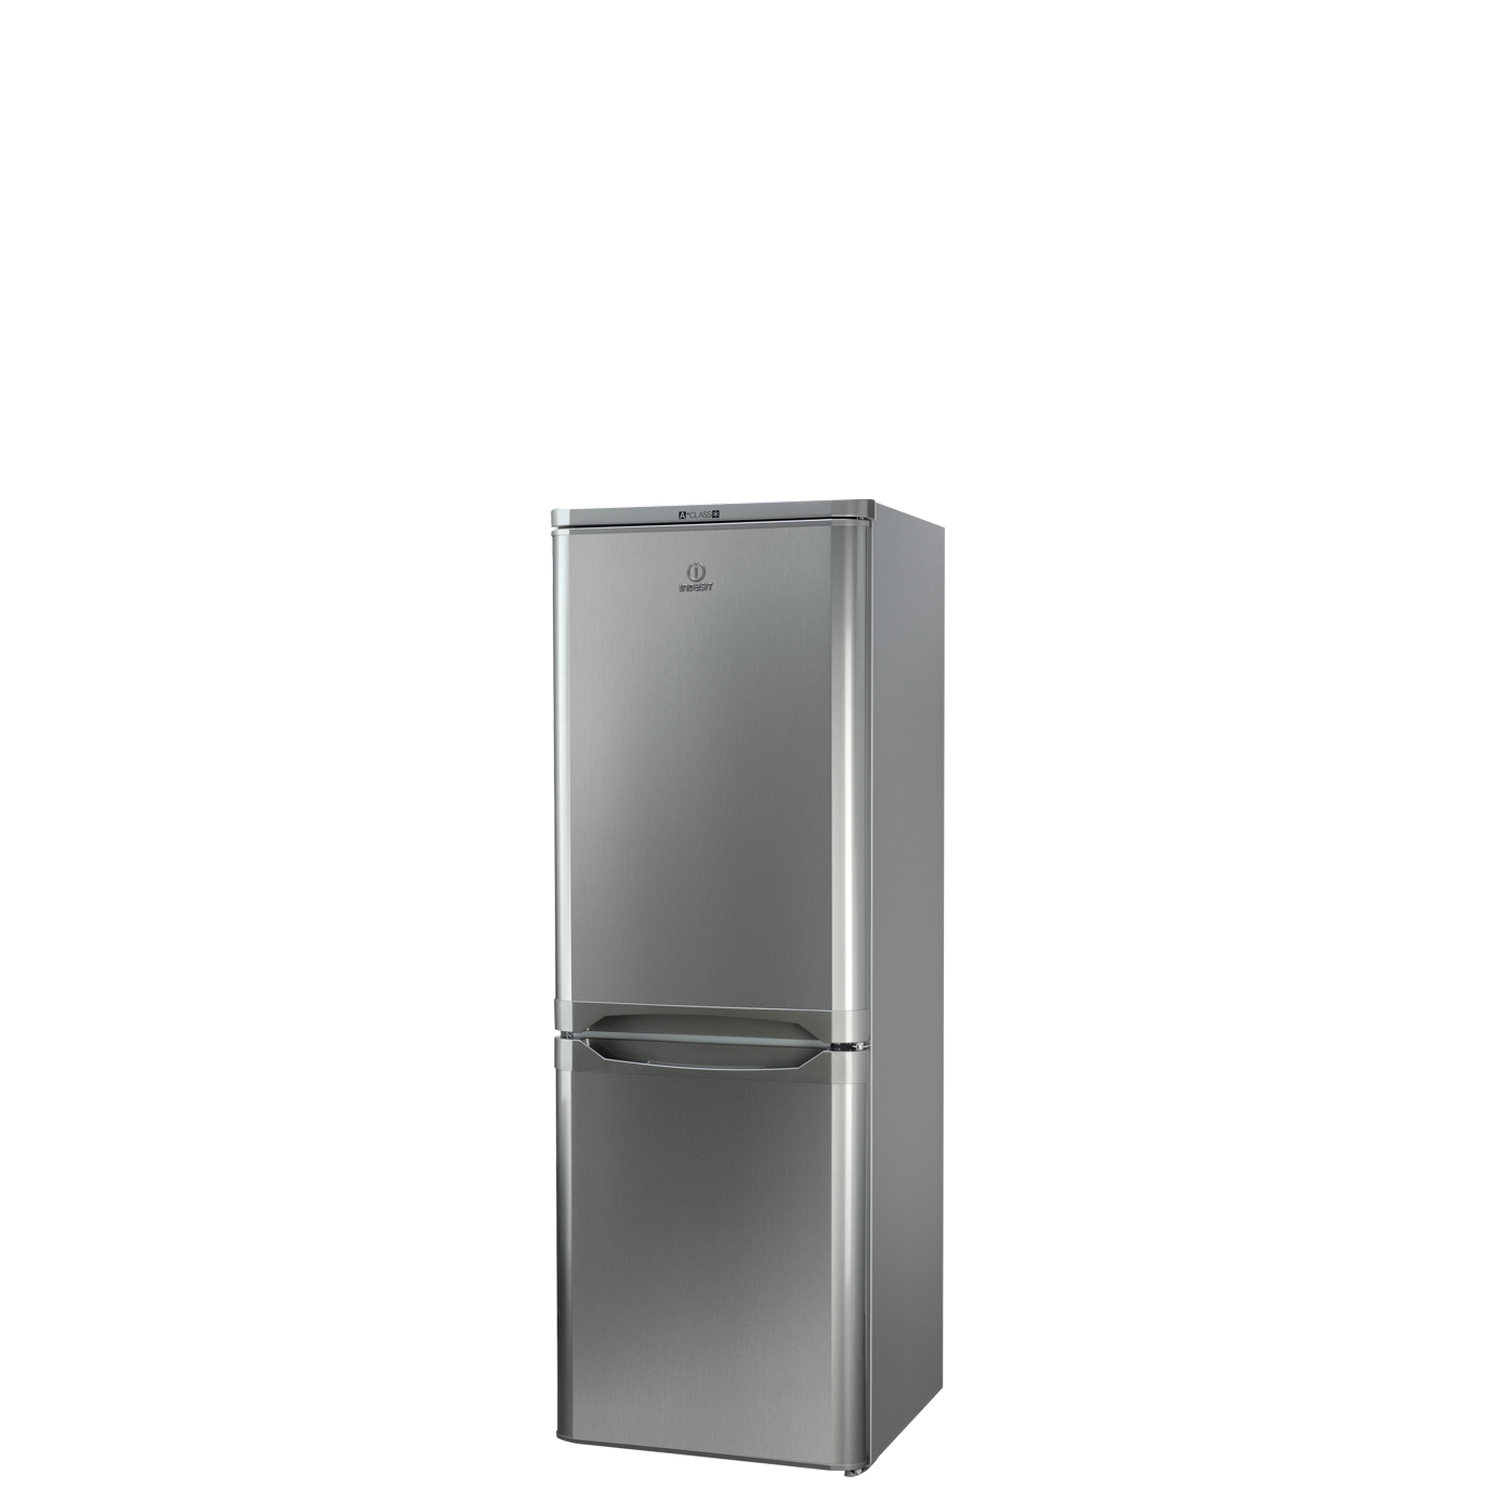 Indesit NCAA 55 NX KÜHL-GEFRIERKOMBINATION 77315